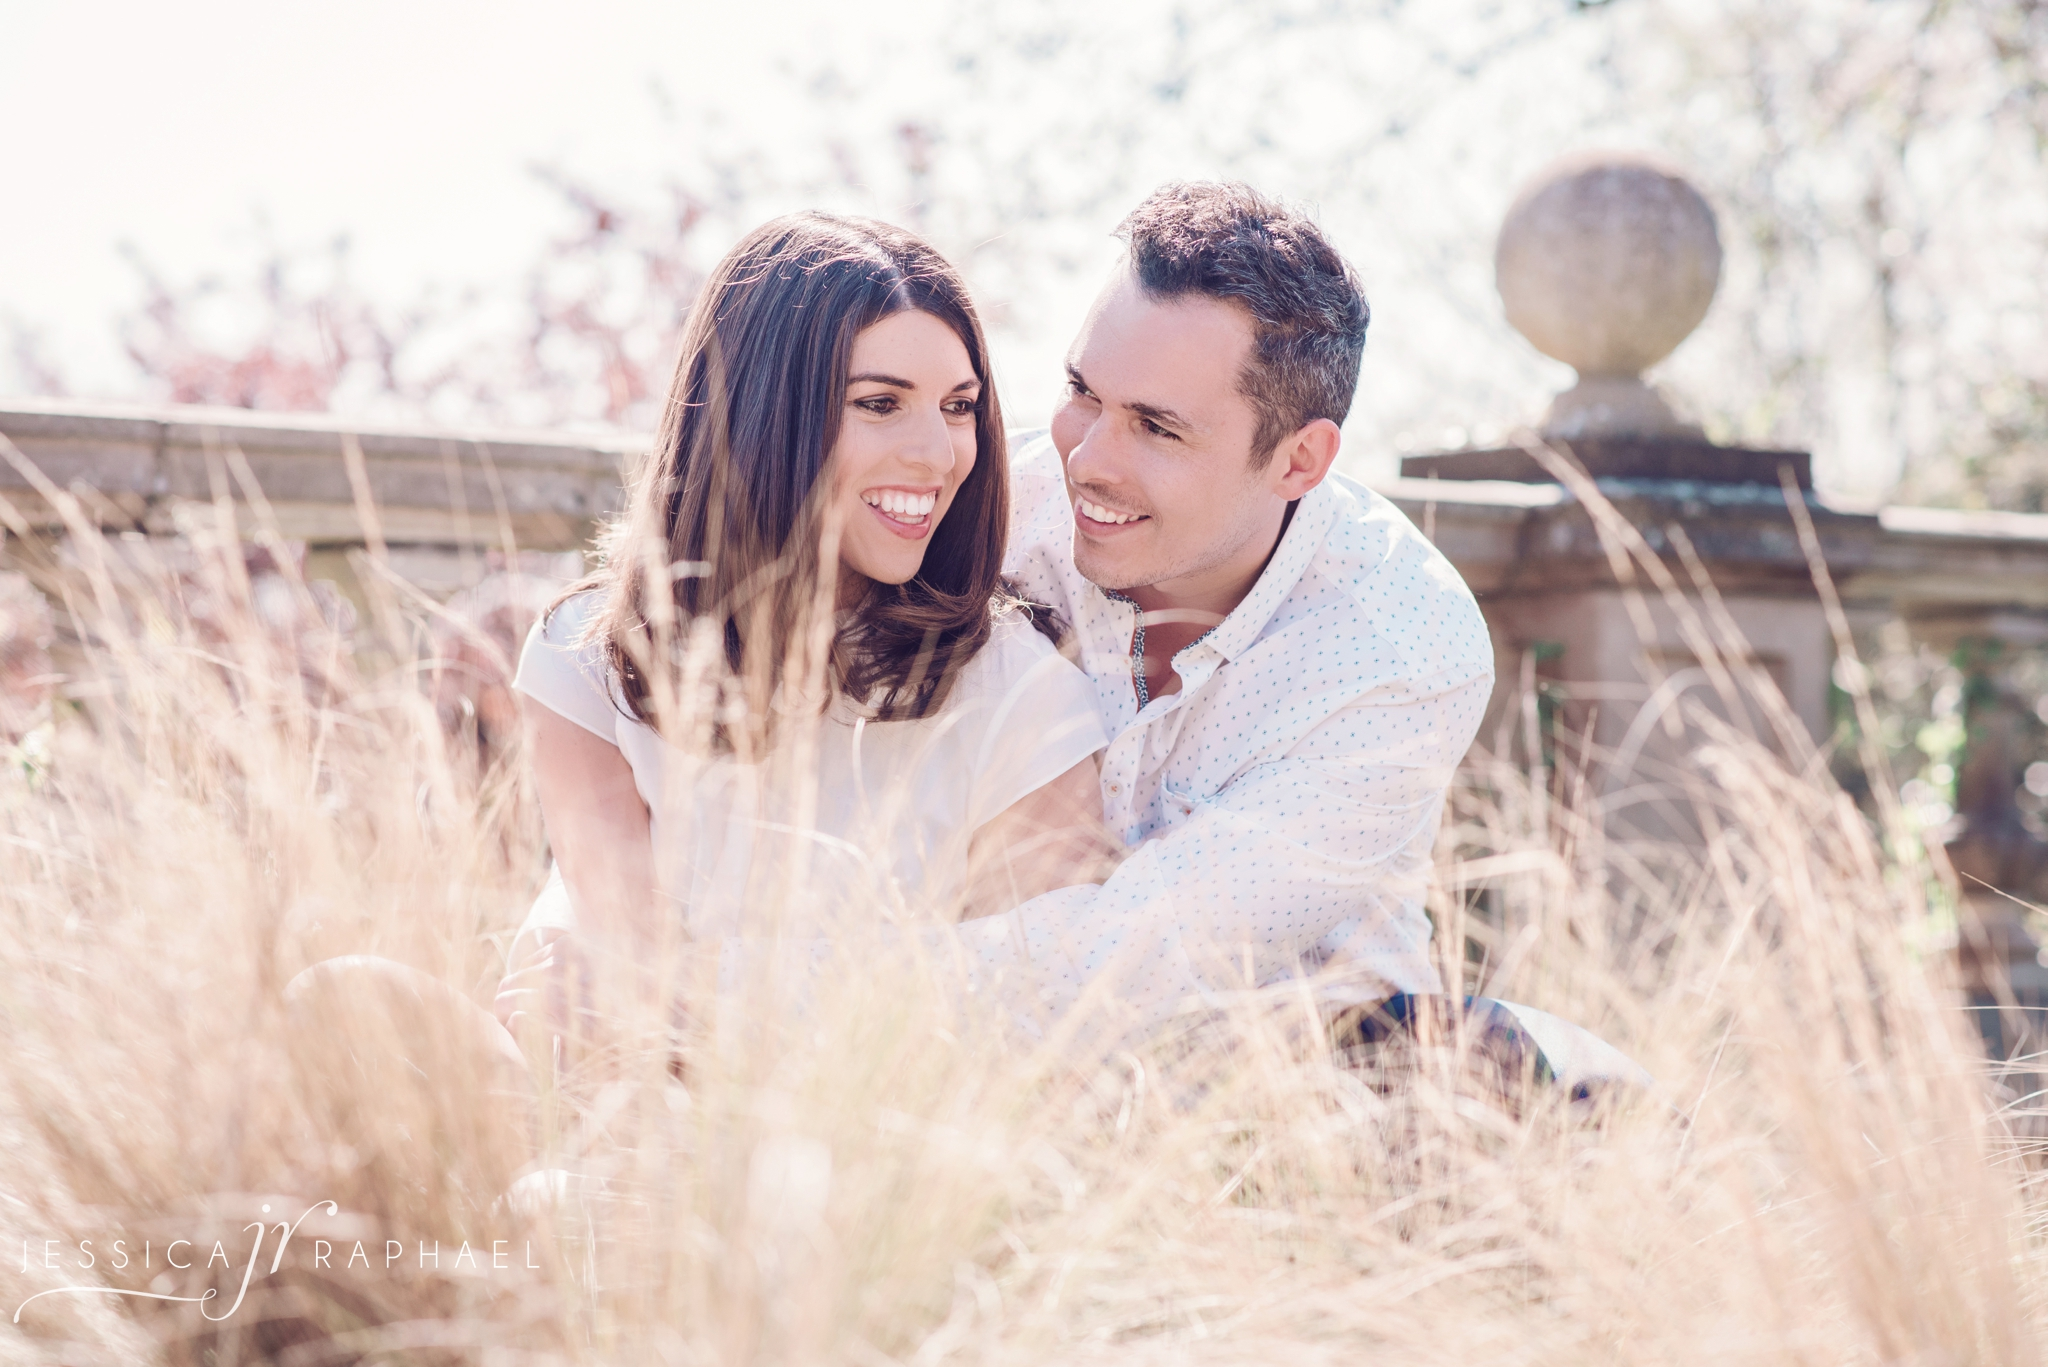 engagement-photography-spring-jessica-raphael-photography-dansfield-house